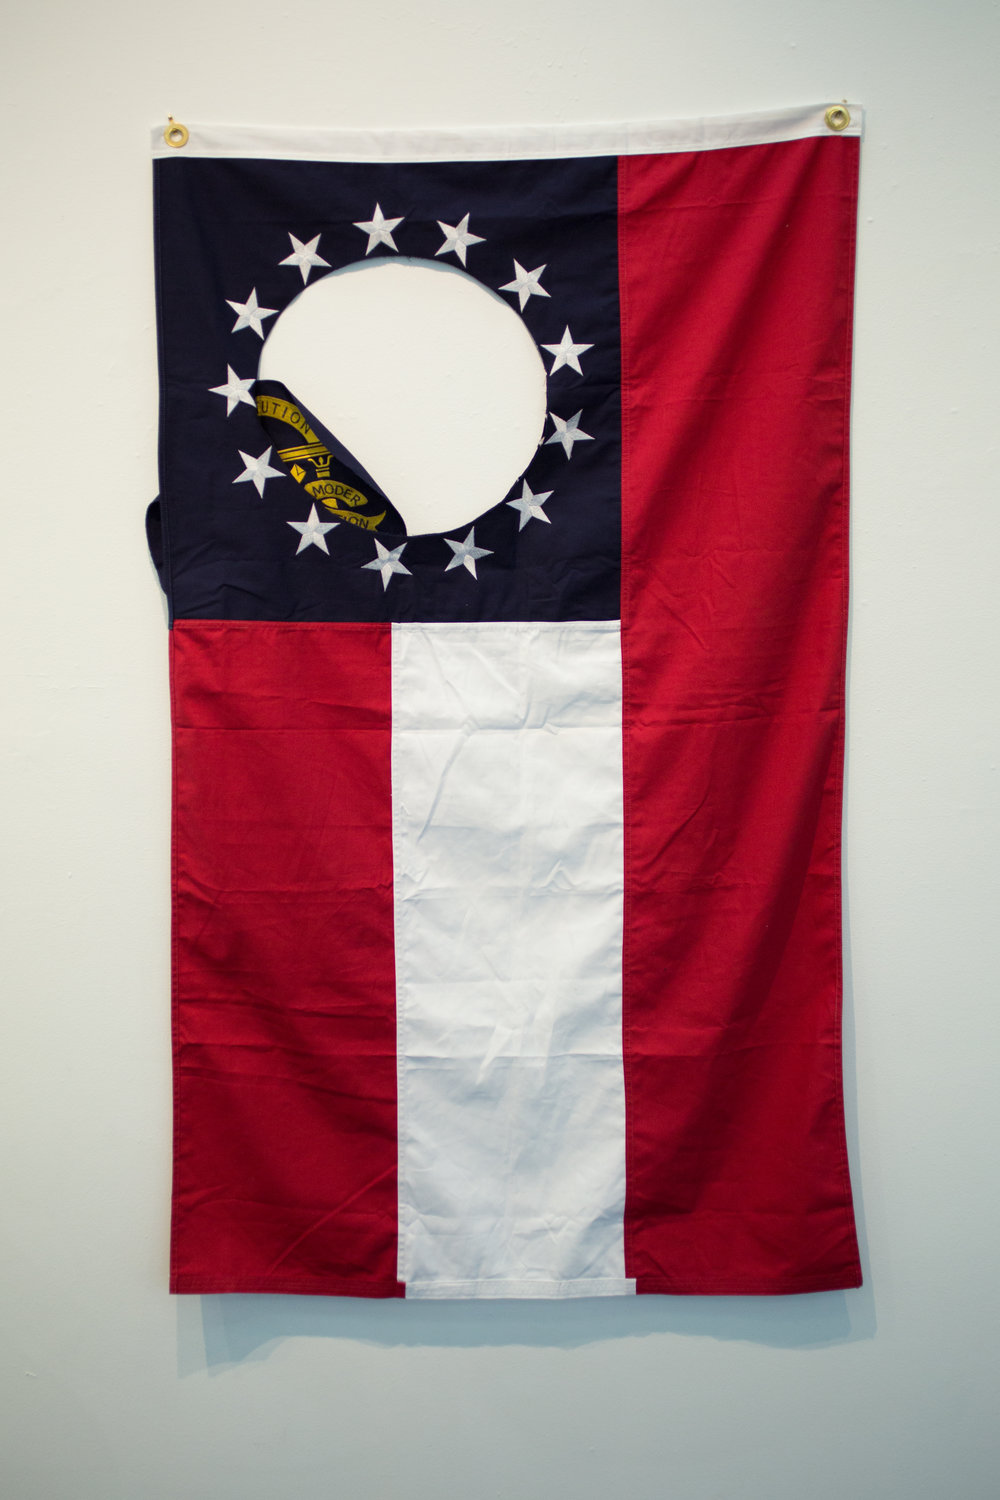 "#26 (Sic Semper Tyrannis)  Georgia State Flag 60""x36"" 2018  Photo Courtesy: Anna C. Robertson"